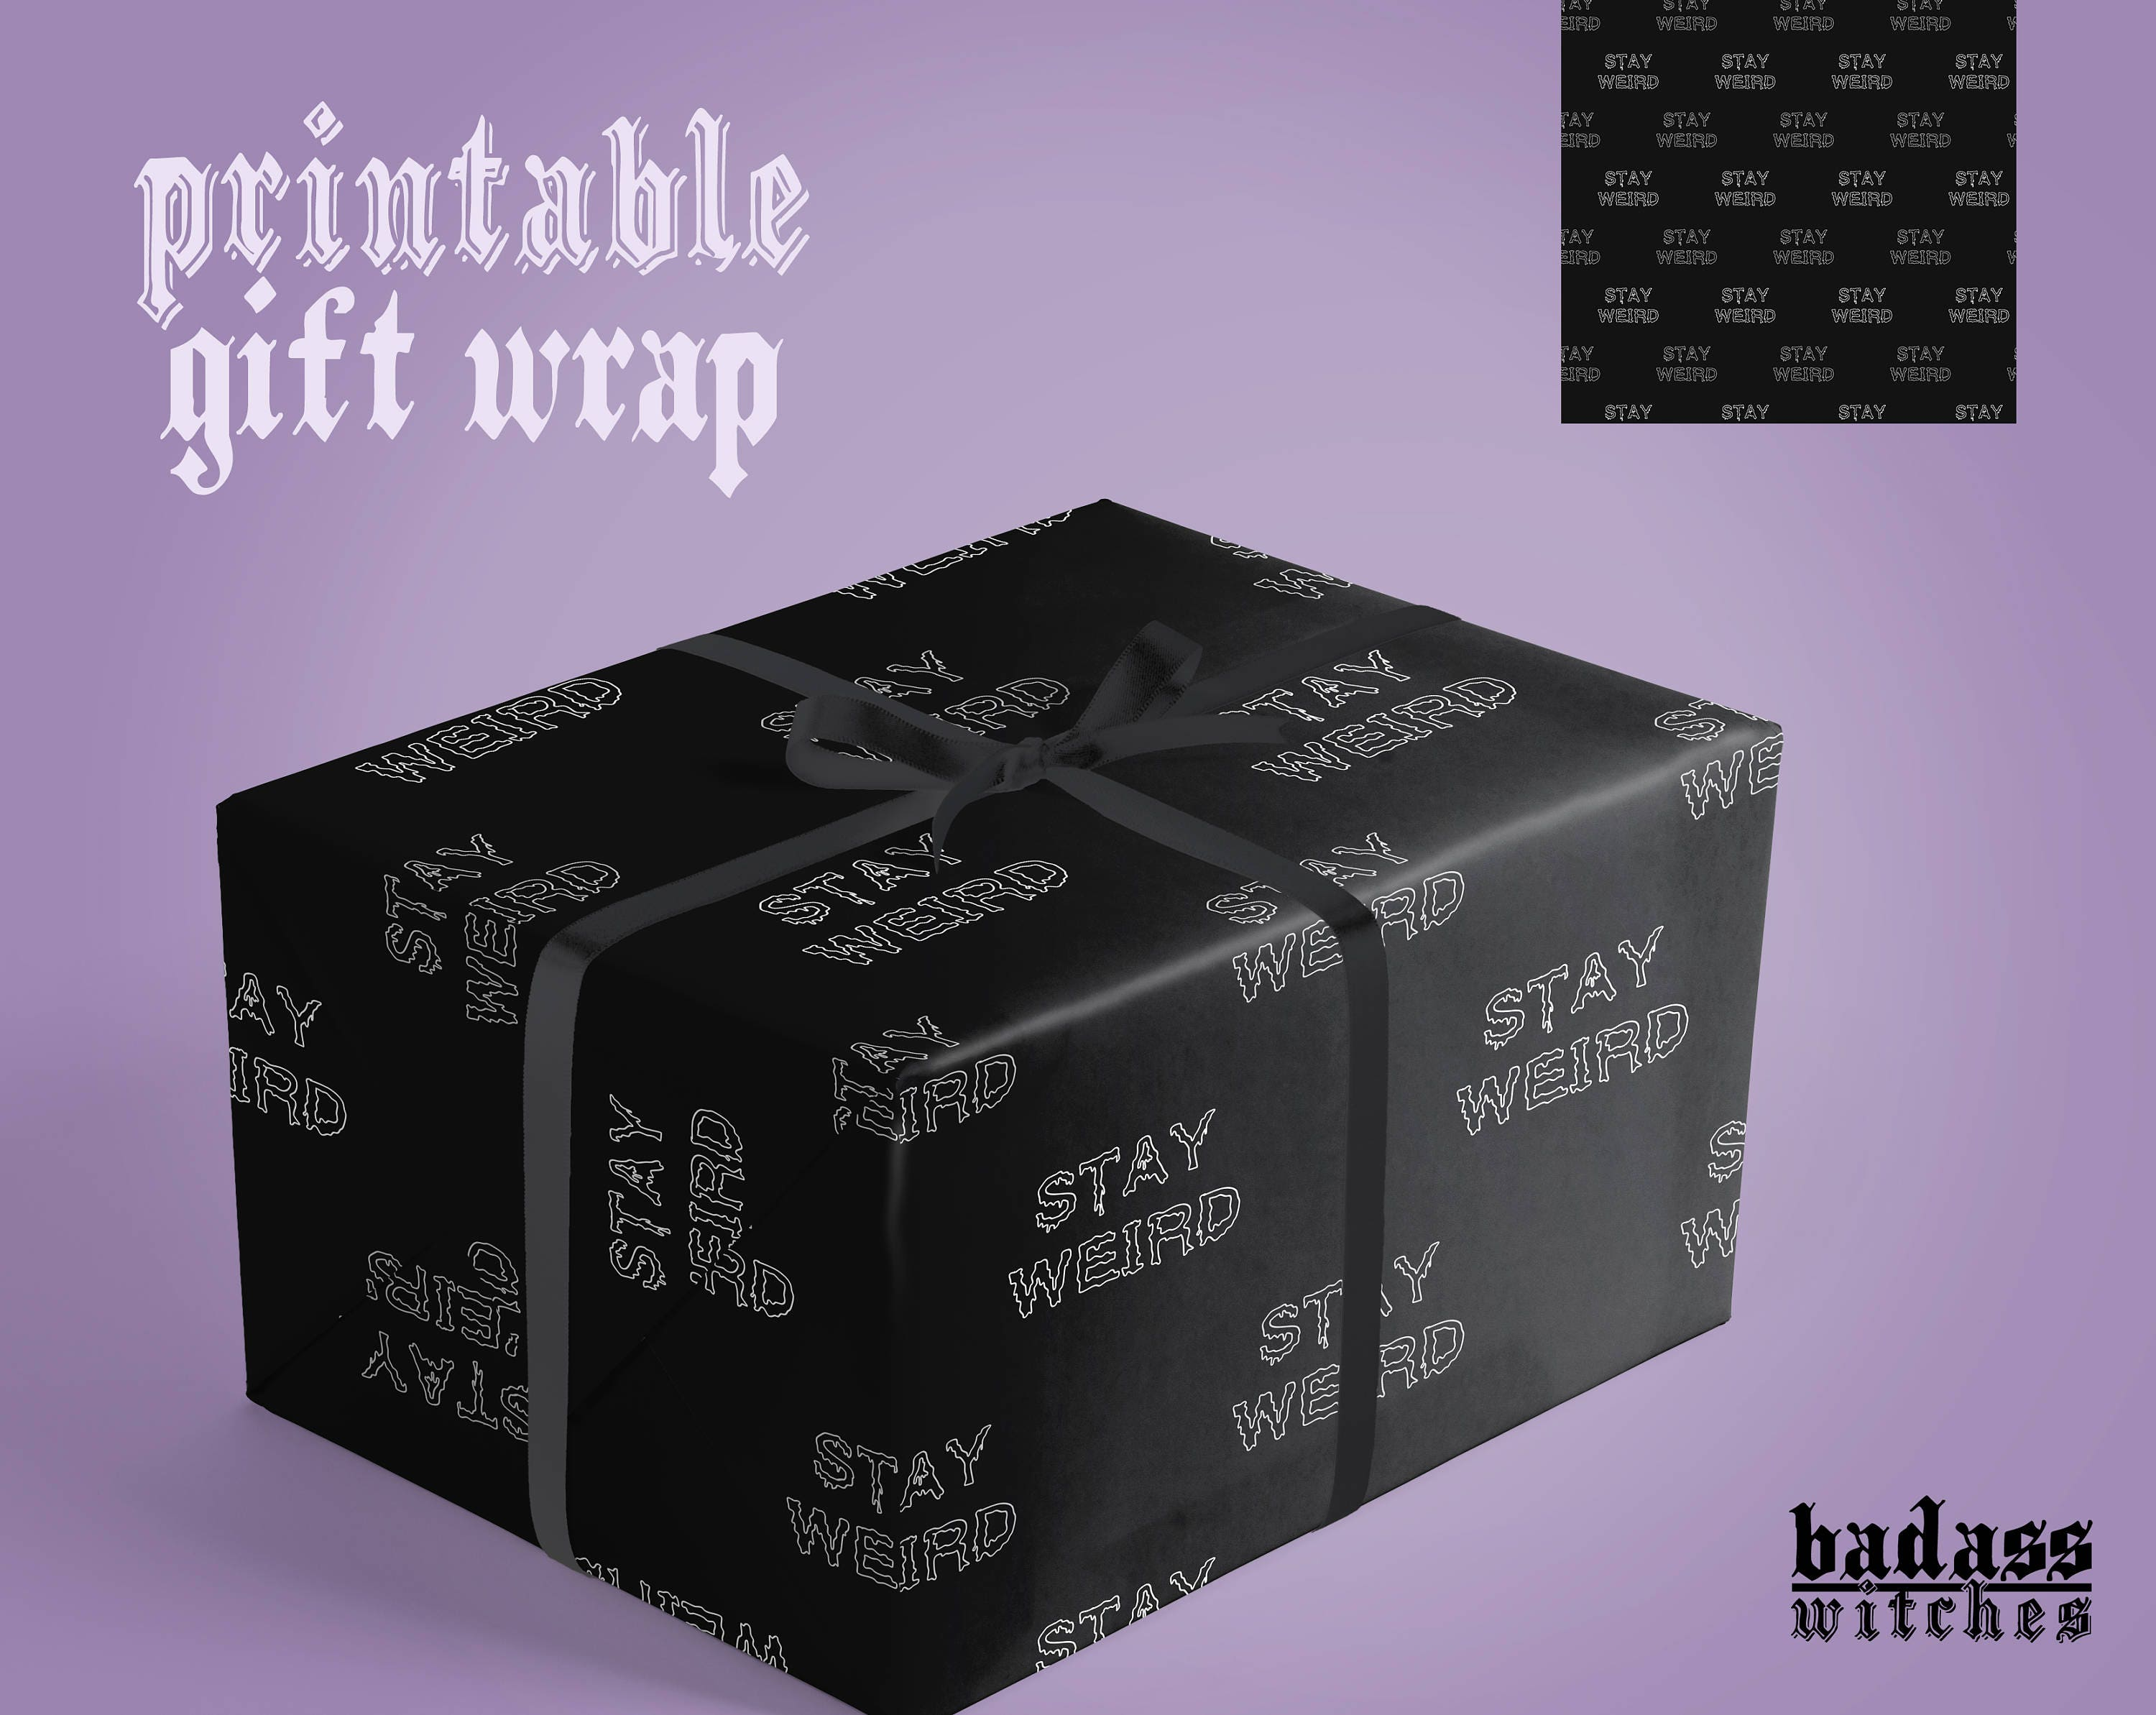 Aesthetic Wrapping Paper Funny Gift Wrap Paper Stay Weird | Etsy